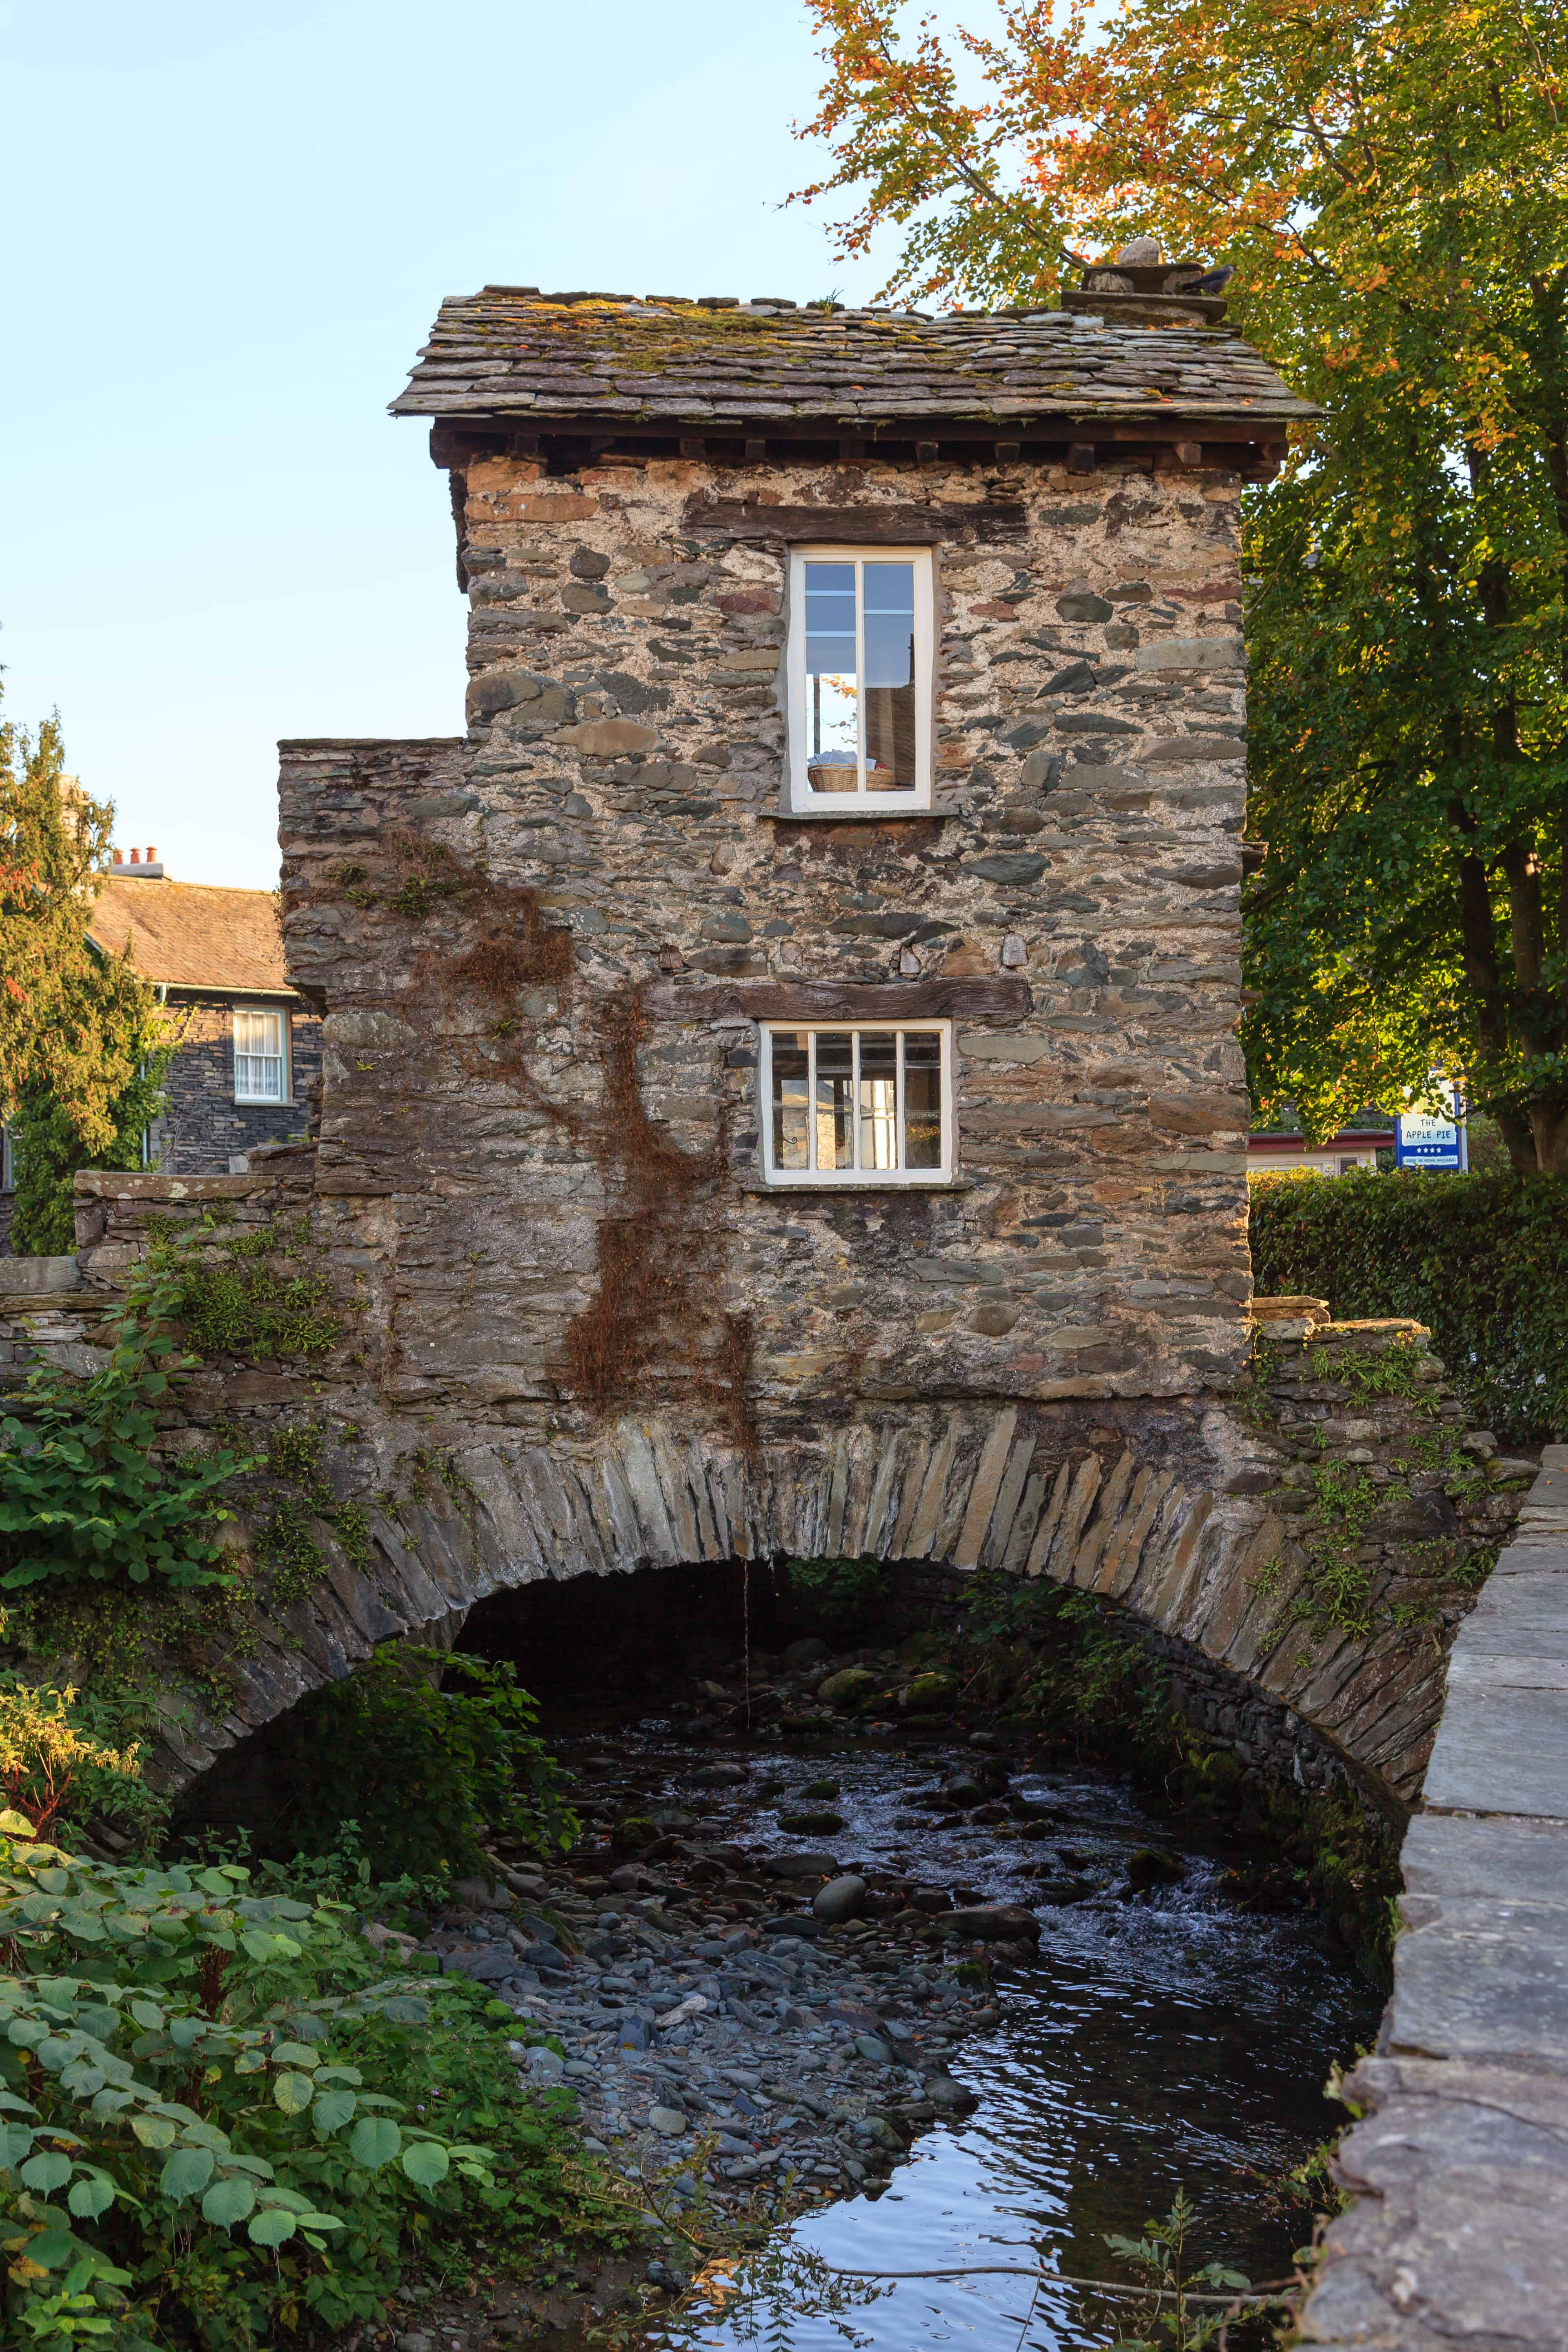 AMBLESIDE, ENGLAND - Bridge House a 17th century old stone cottage perched over Stock Beck in Ambleside, Cumbria, in the English Lake District.